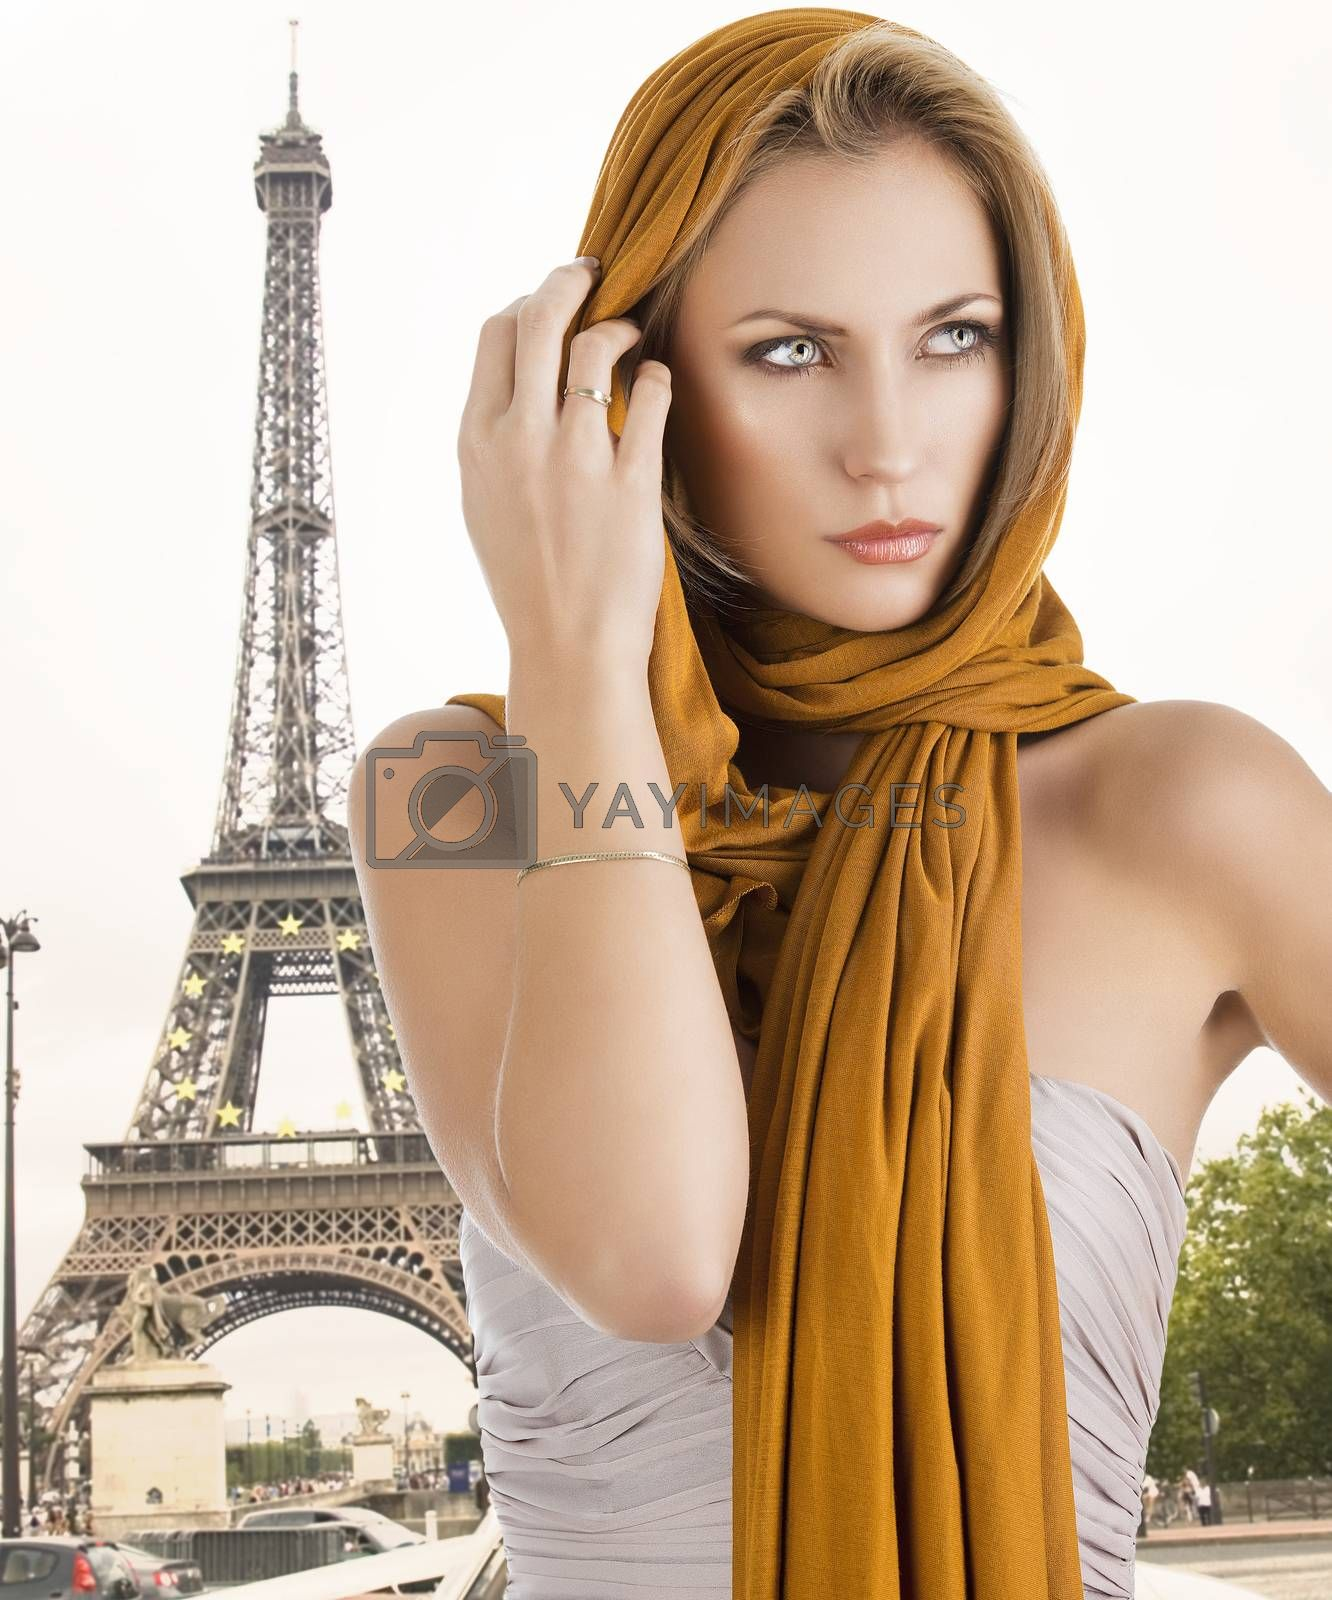 Royalty free image of blond girl in elegant dress, her right hand is near the face by fotoCD